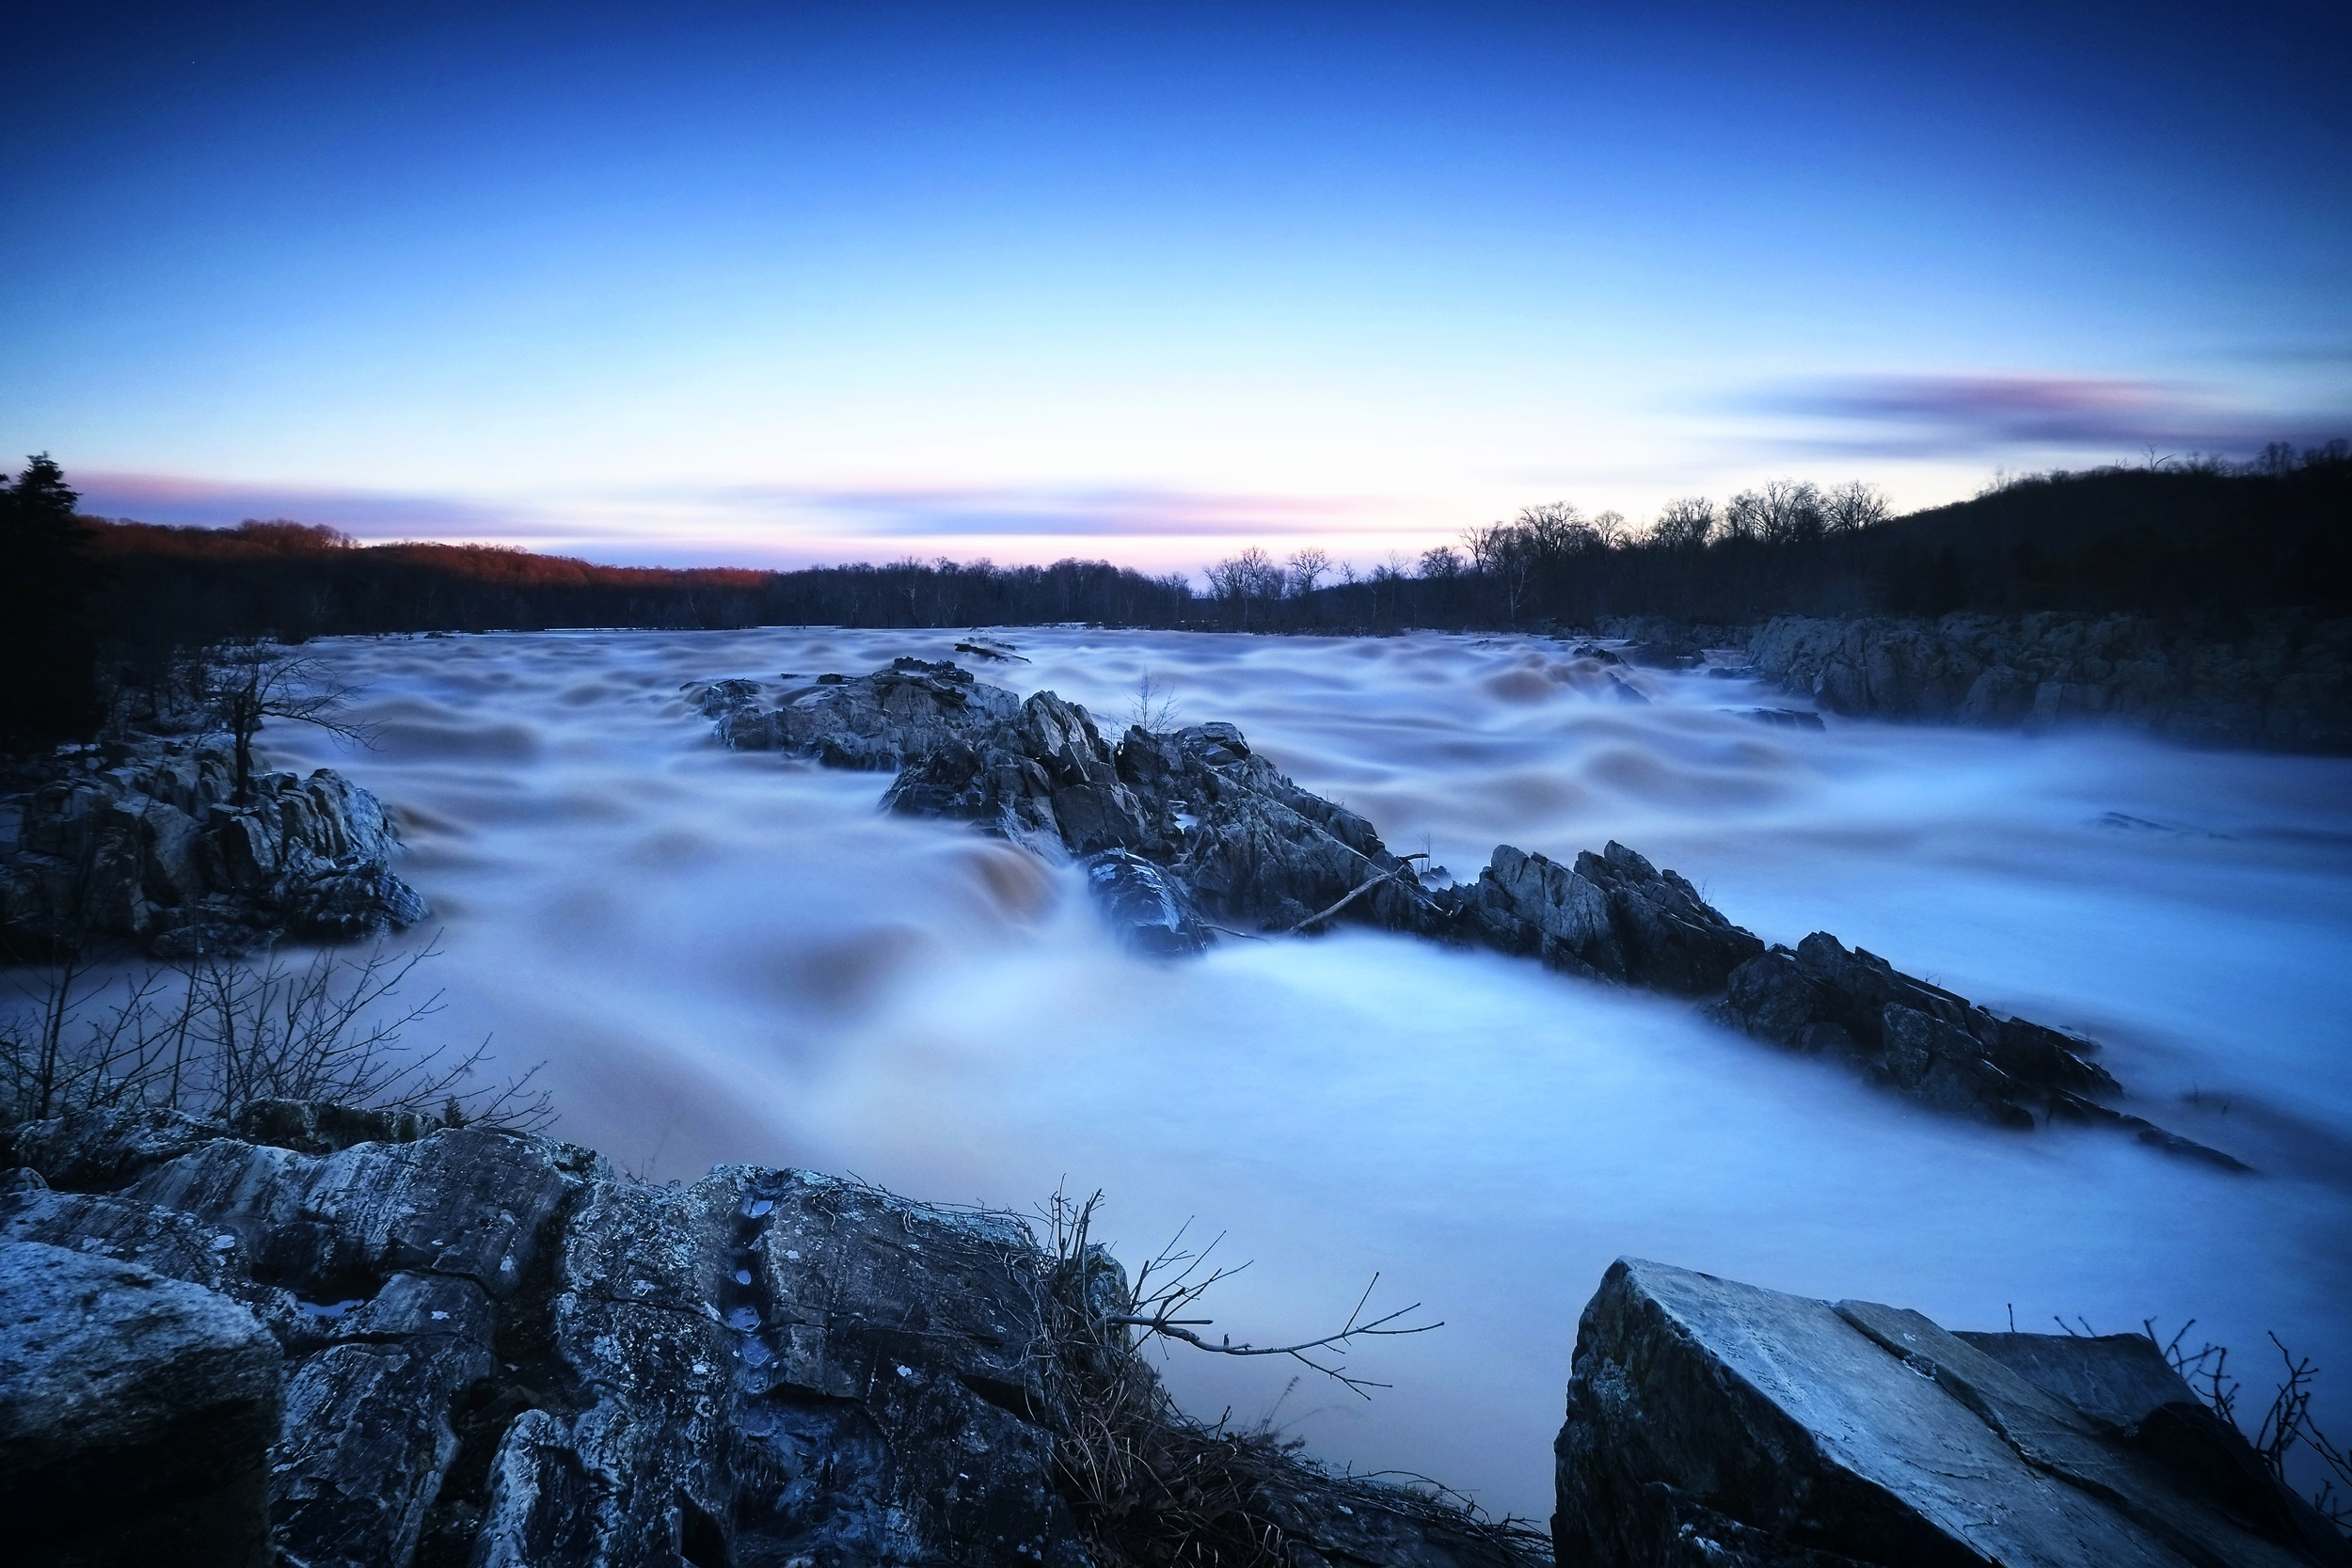 EXIF : ISO 200, f11, 120 seconds @ 18mm.  Filters : Big stopper.  Pre-dawn, extremely high and fast moving water.